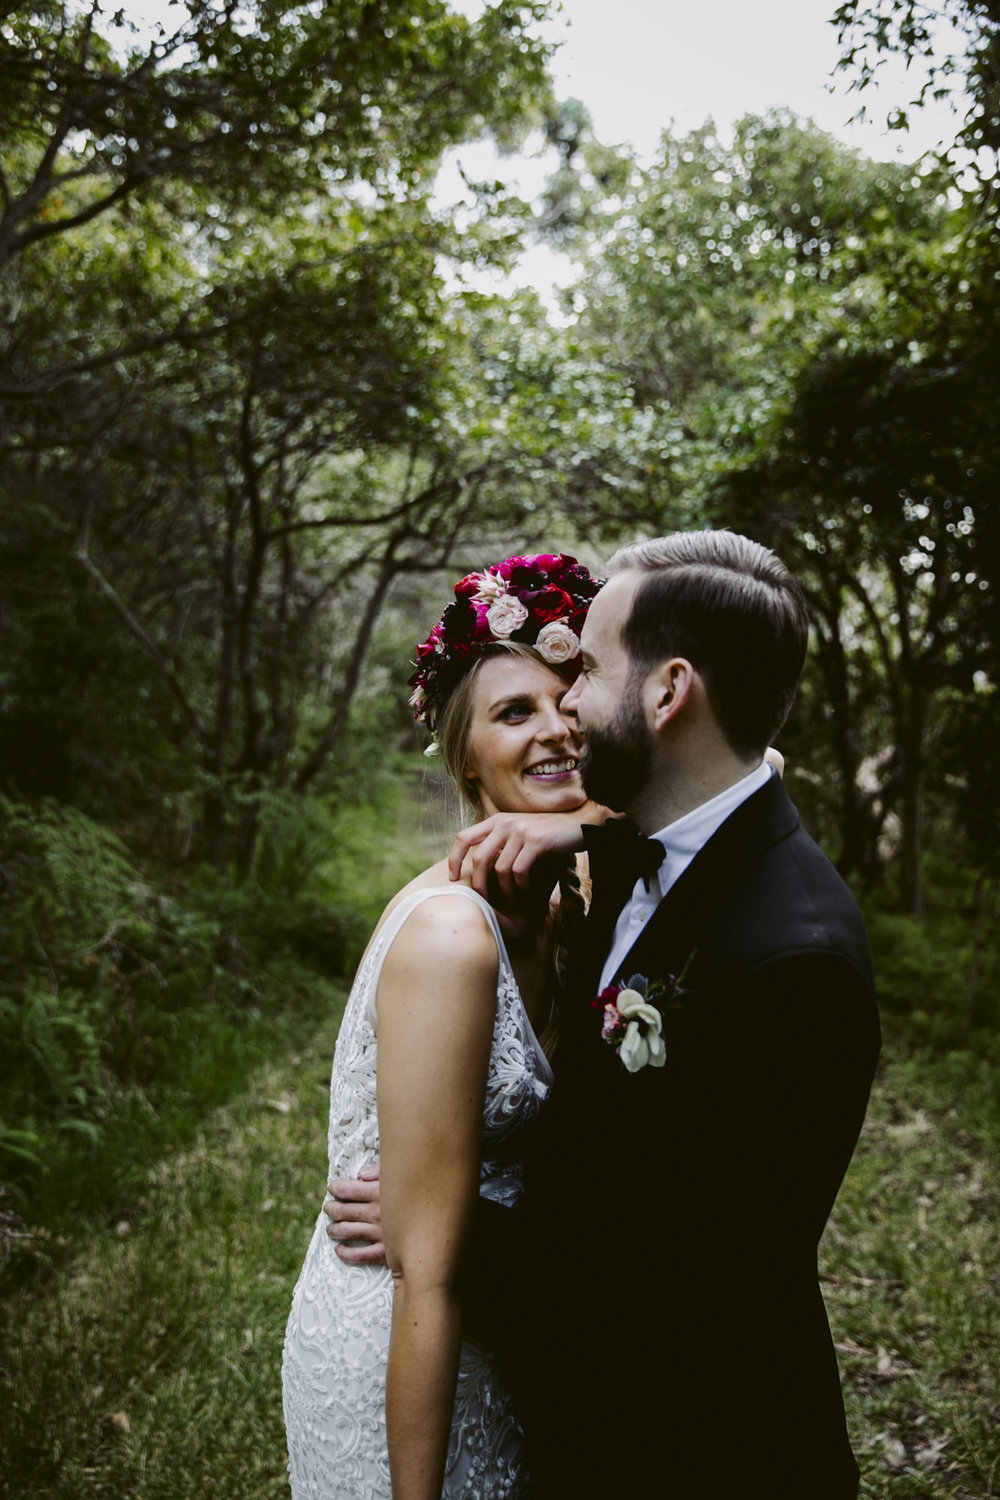 Anna Turner Sydney Wedding Photographer-59.jpg